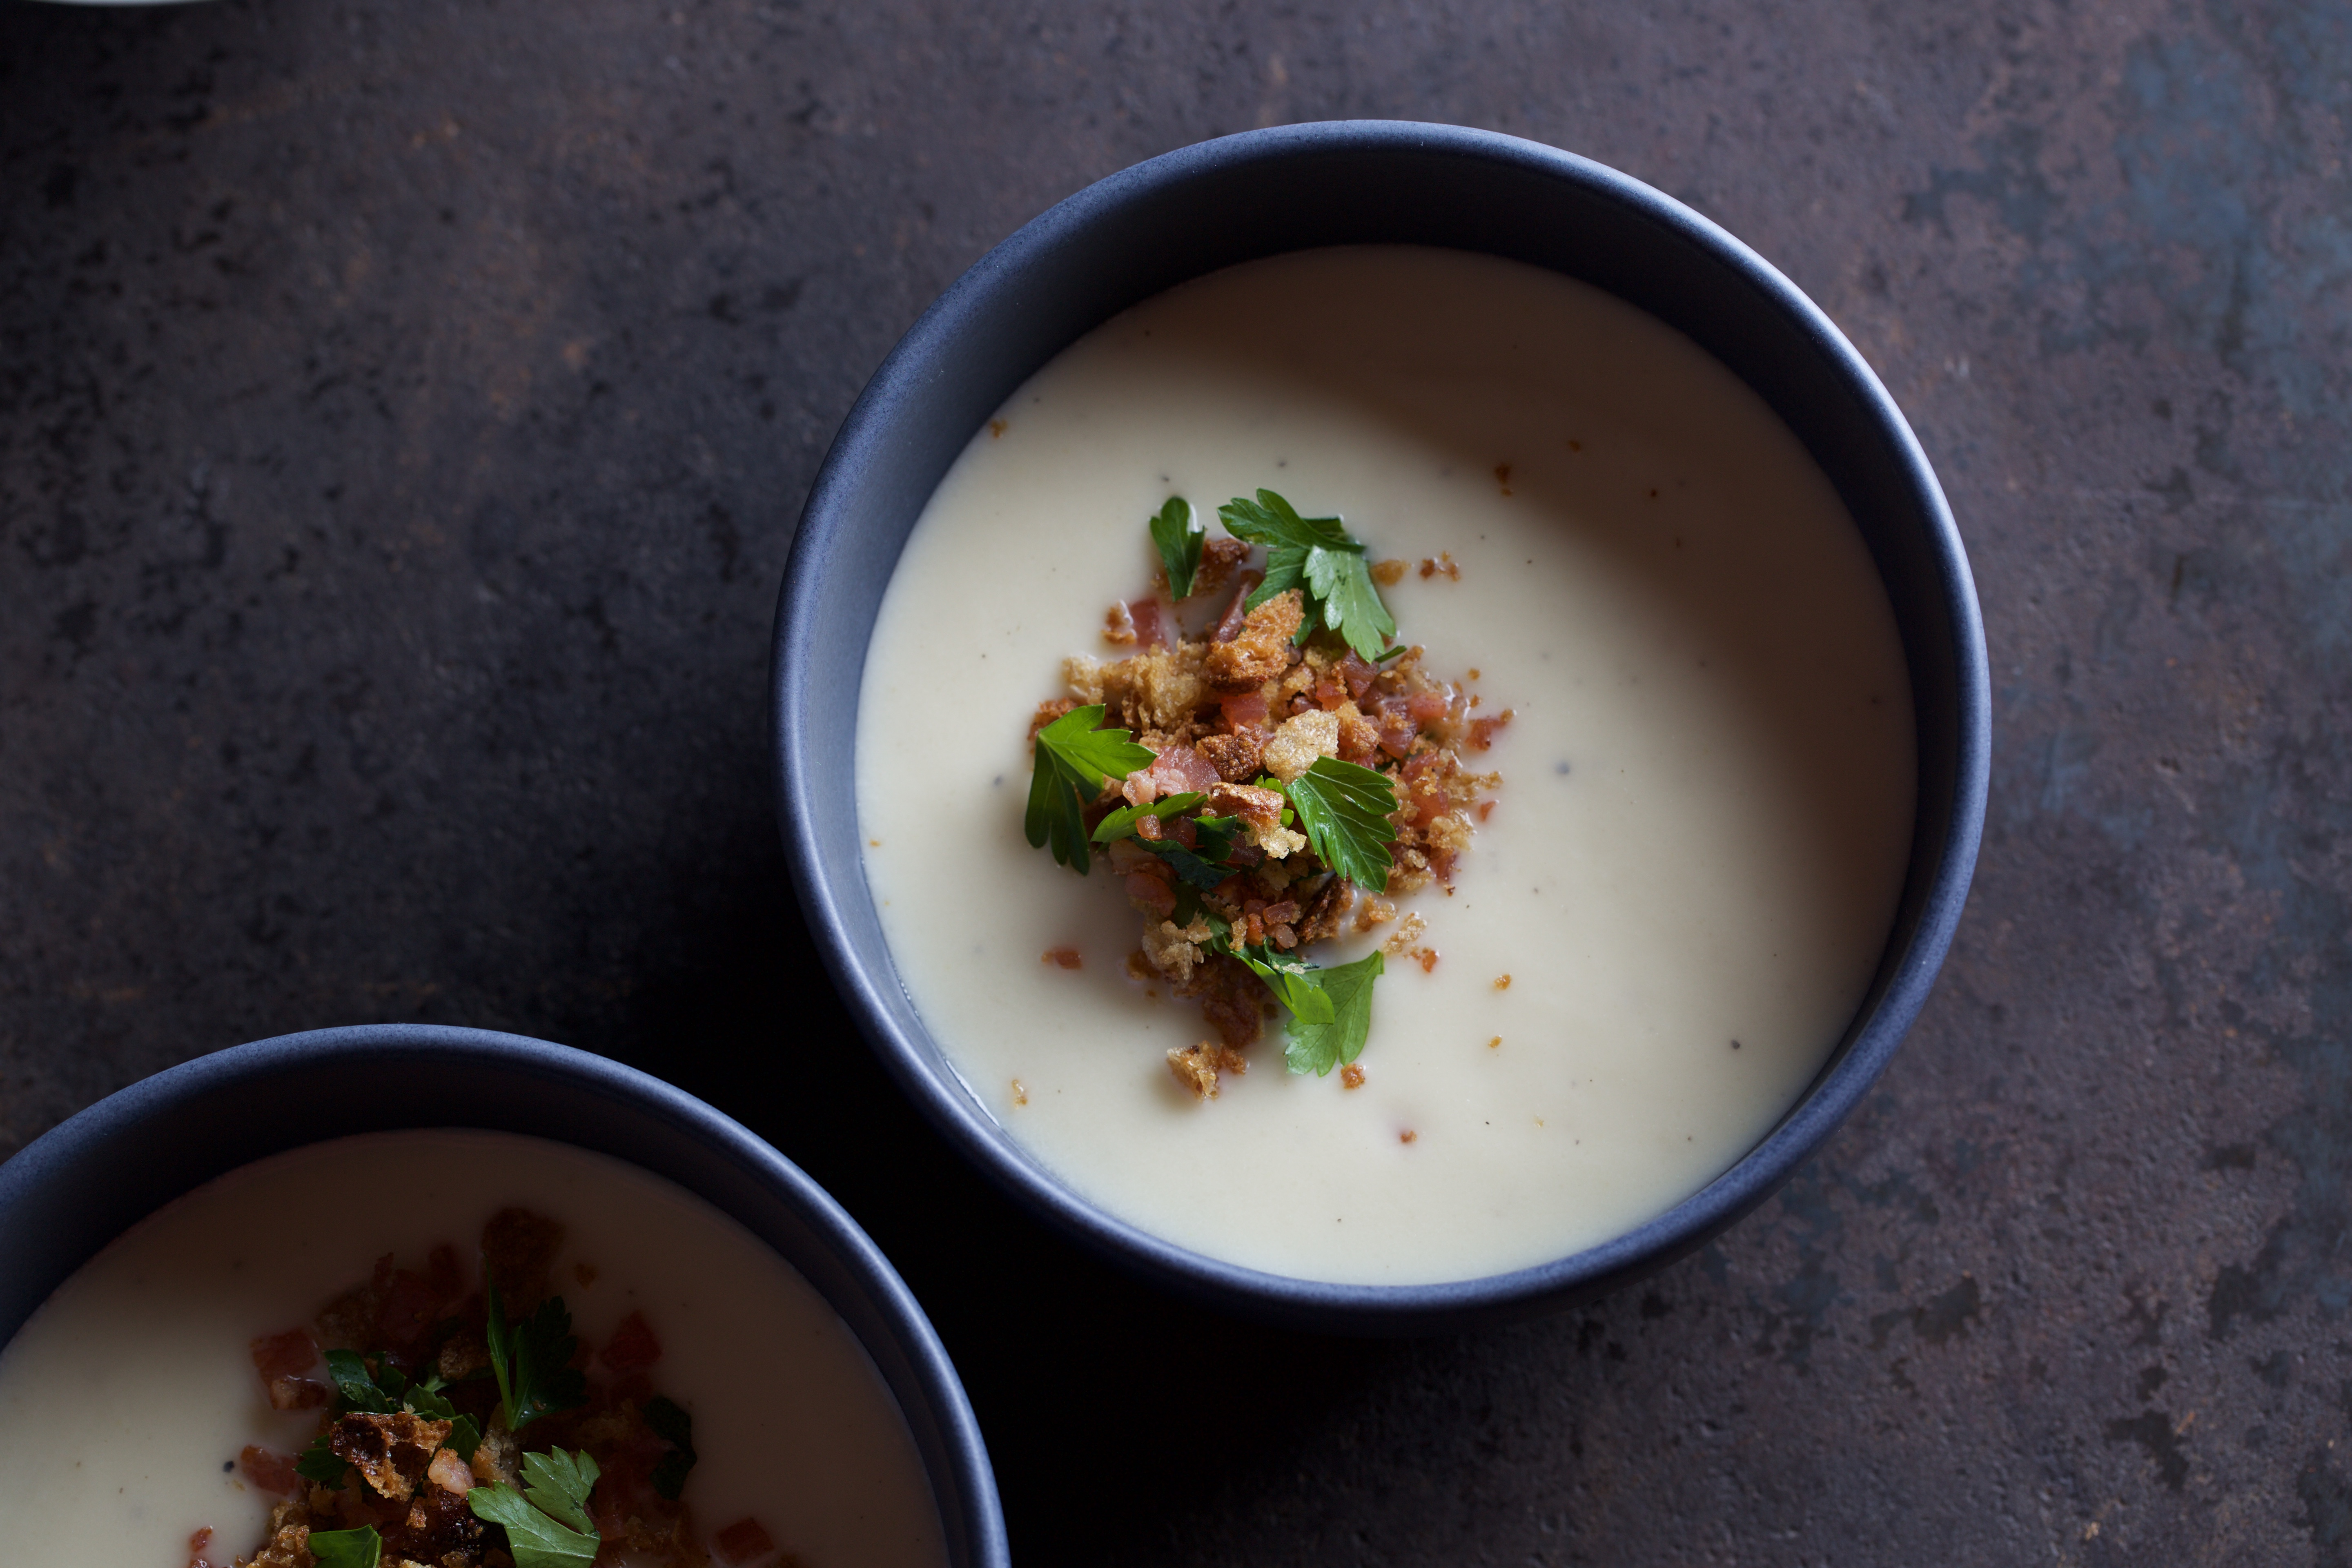 Mainly Cauliflower Soup accompnied with Sourdough Crumbs, Bacon & Parsley